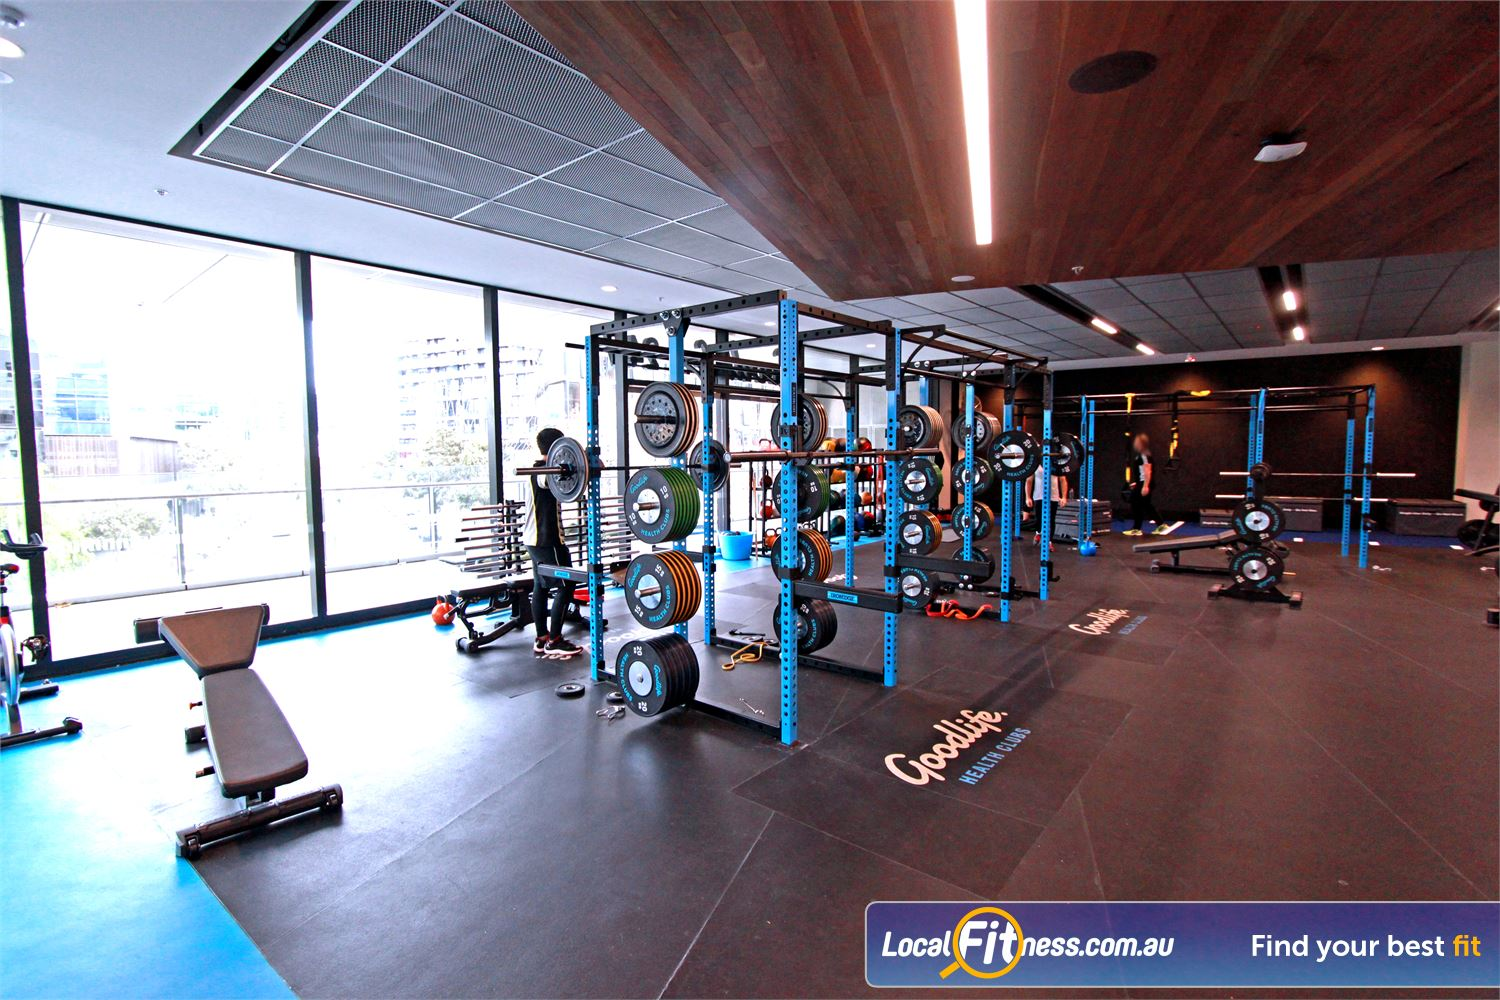 Goodlife Health Clubs Near South Melbourne Heavy duty Olympic platforms and bumper plates.